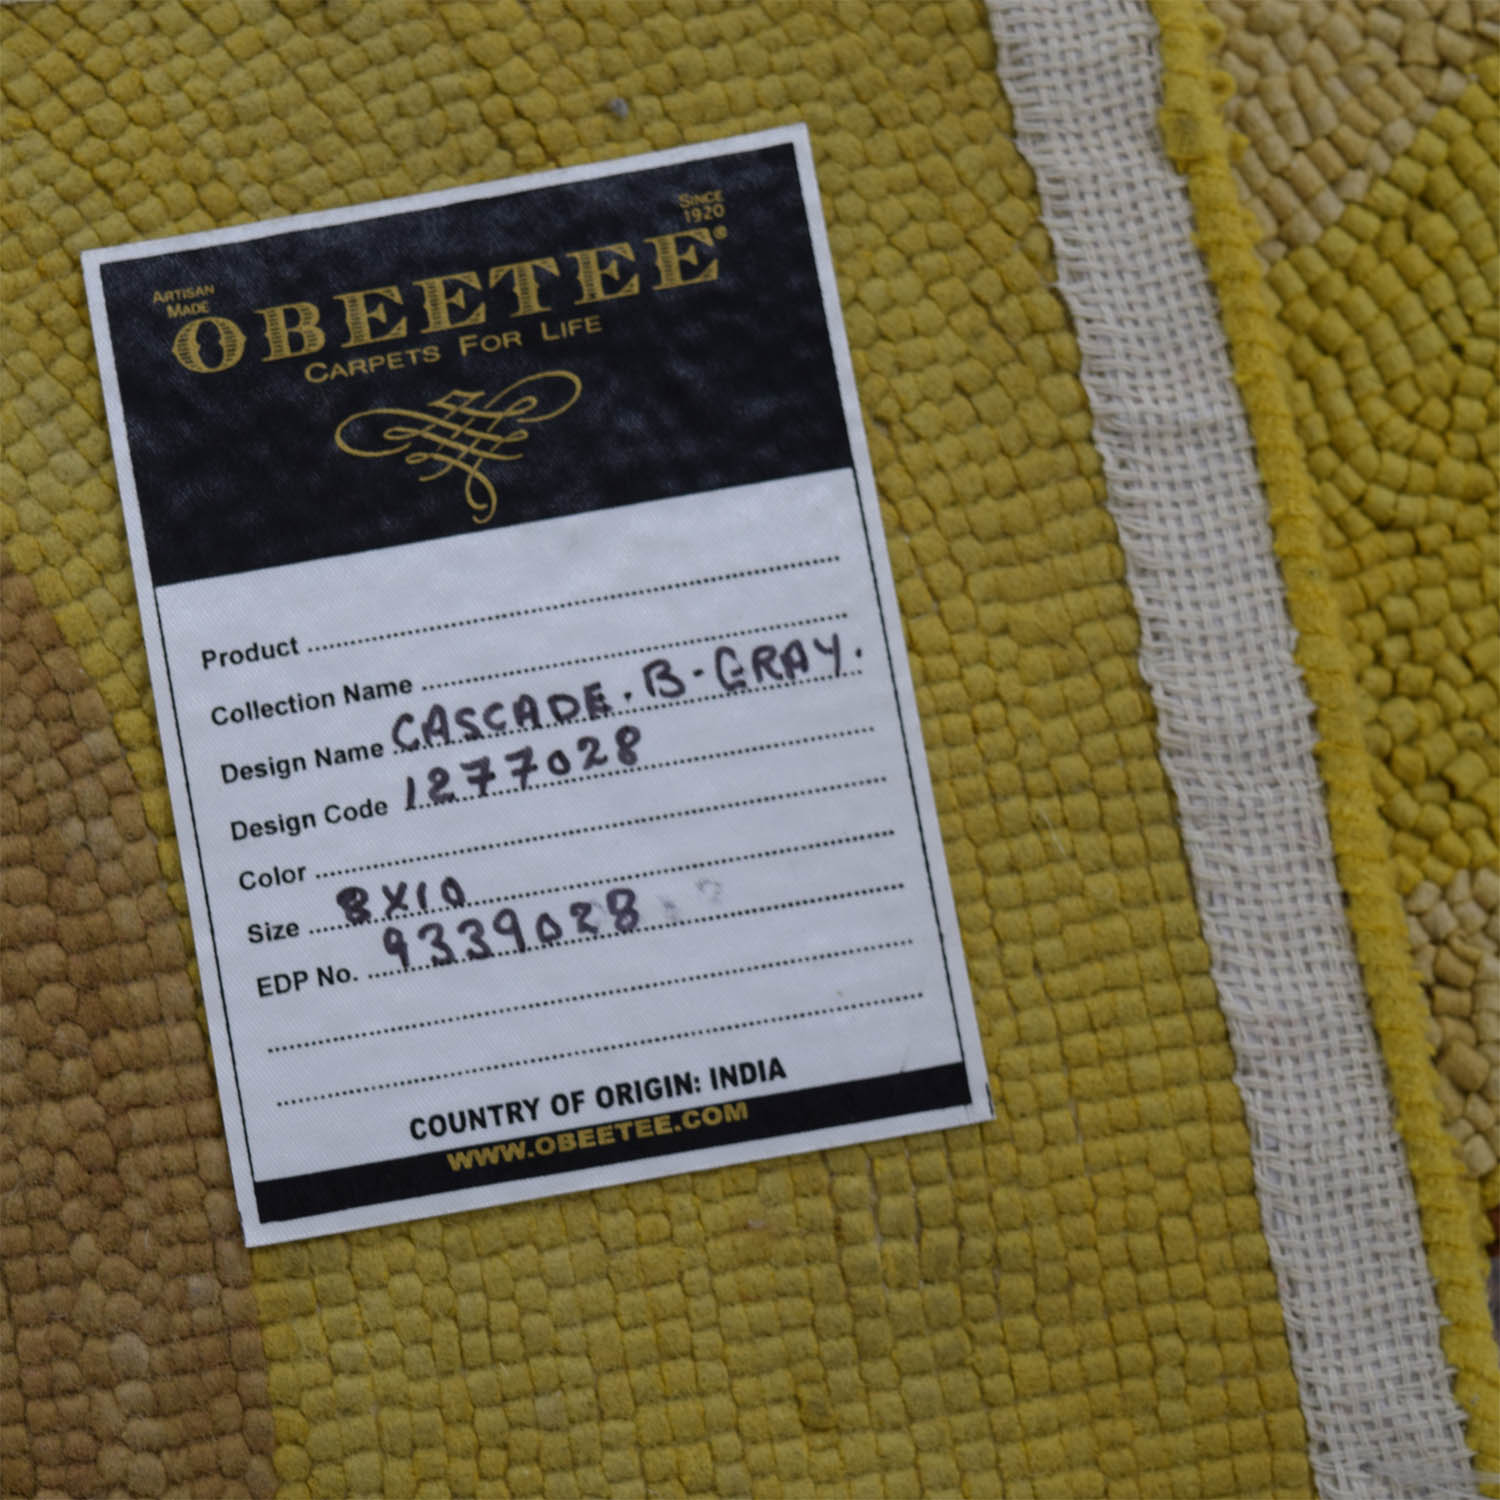 Obeetee ObeeteeHand Hooked Yellow Brown Wavy Lines Rug second hand